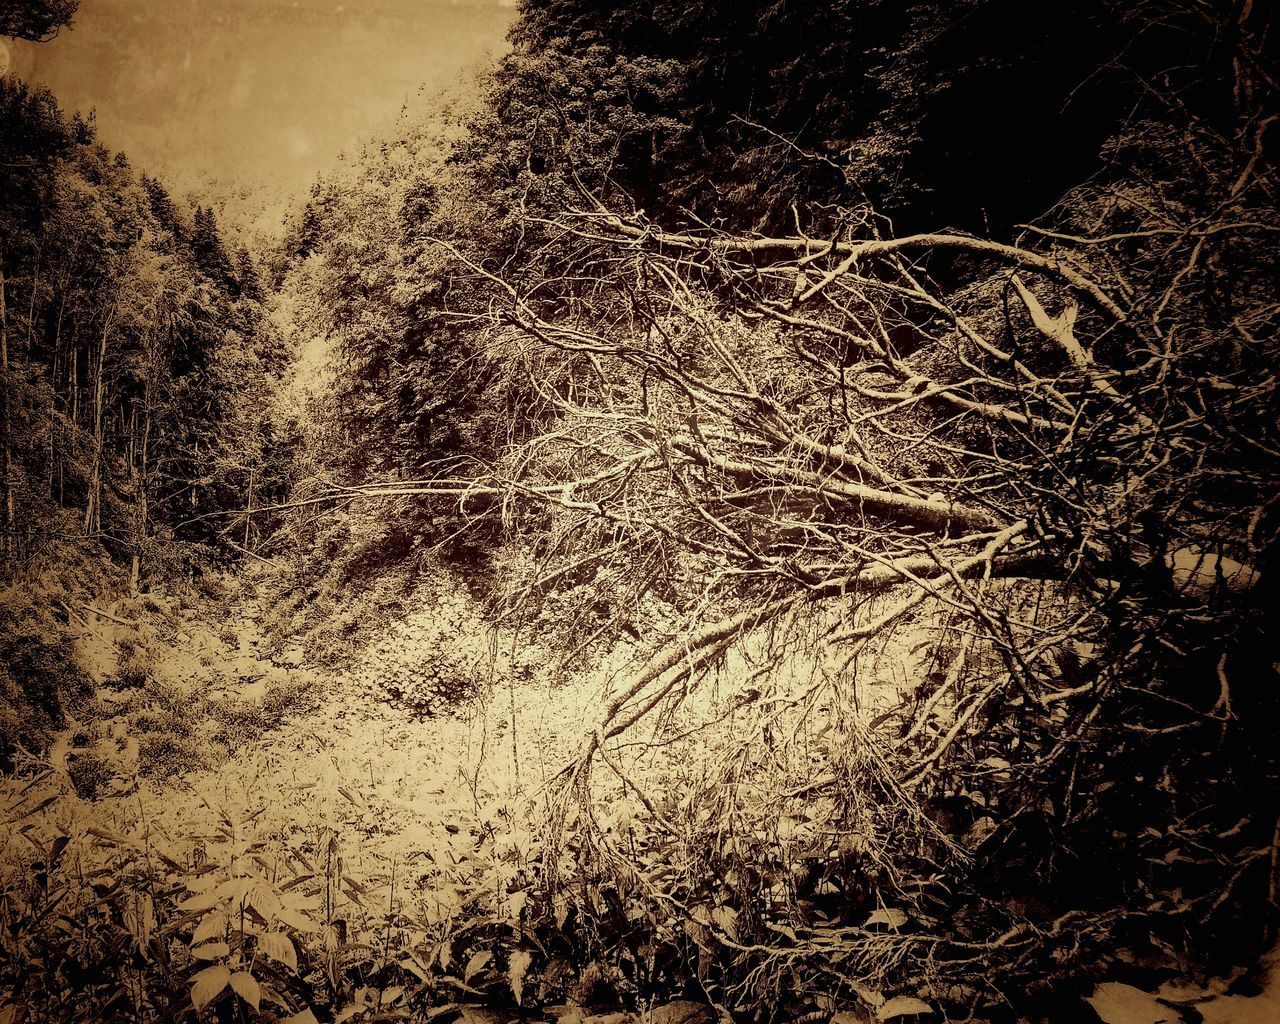 Abstract Backgrounds No People Close-up Day Mountain Fallen Tree Old Forgotten Sad High Contrast